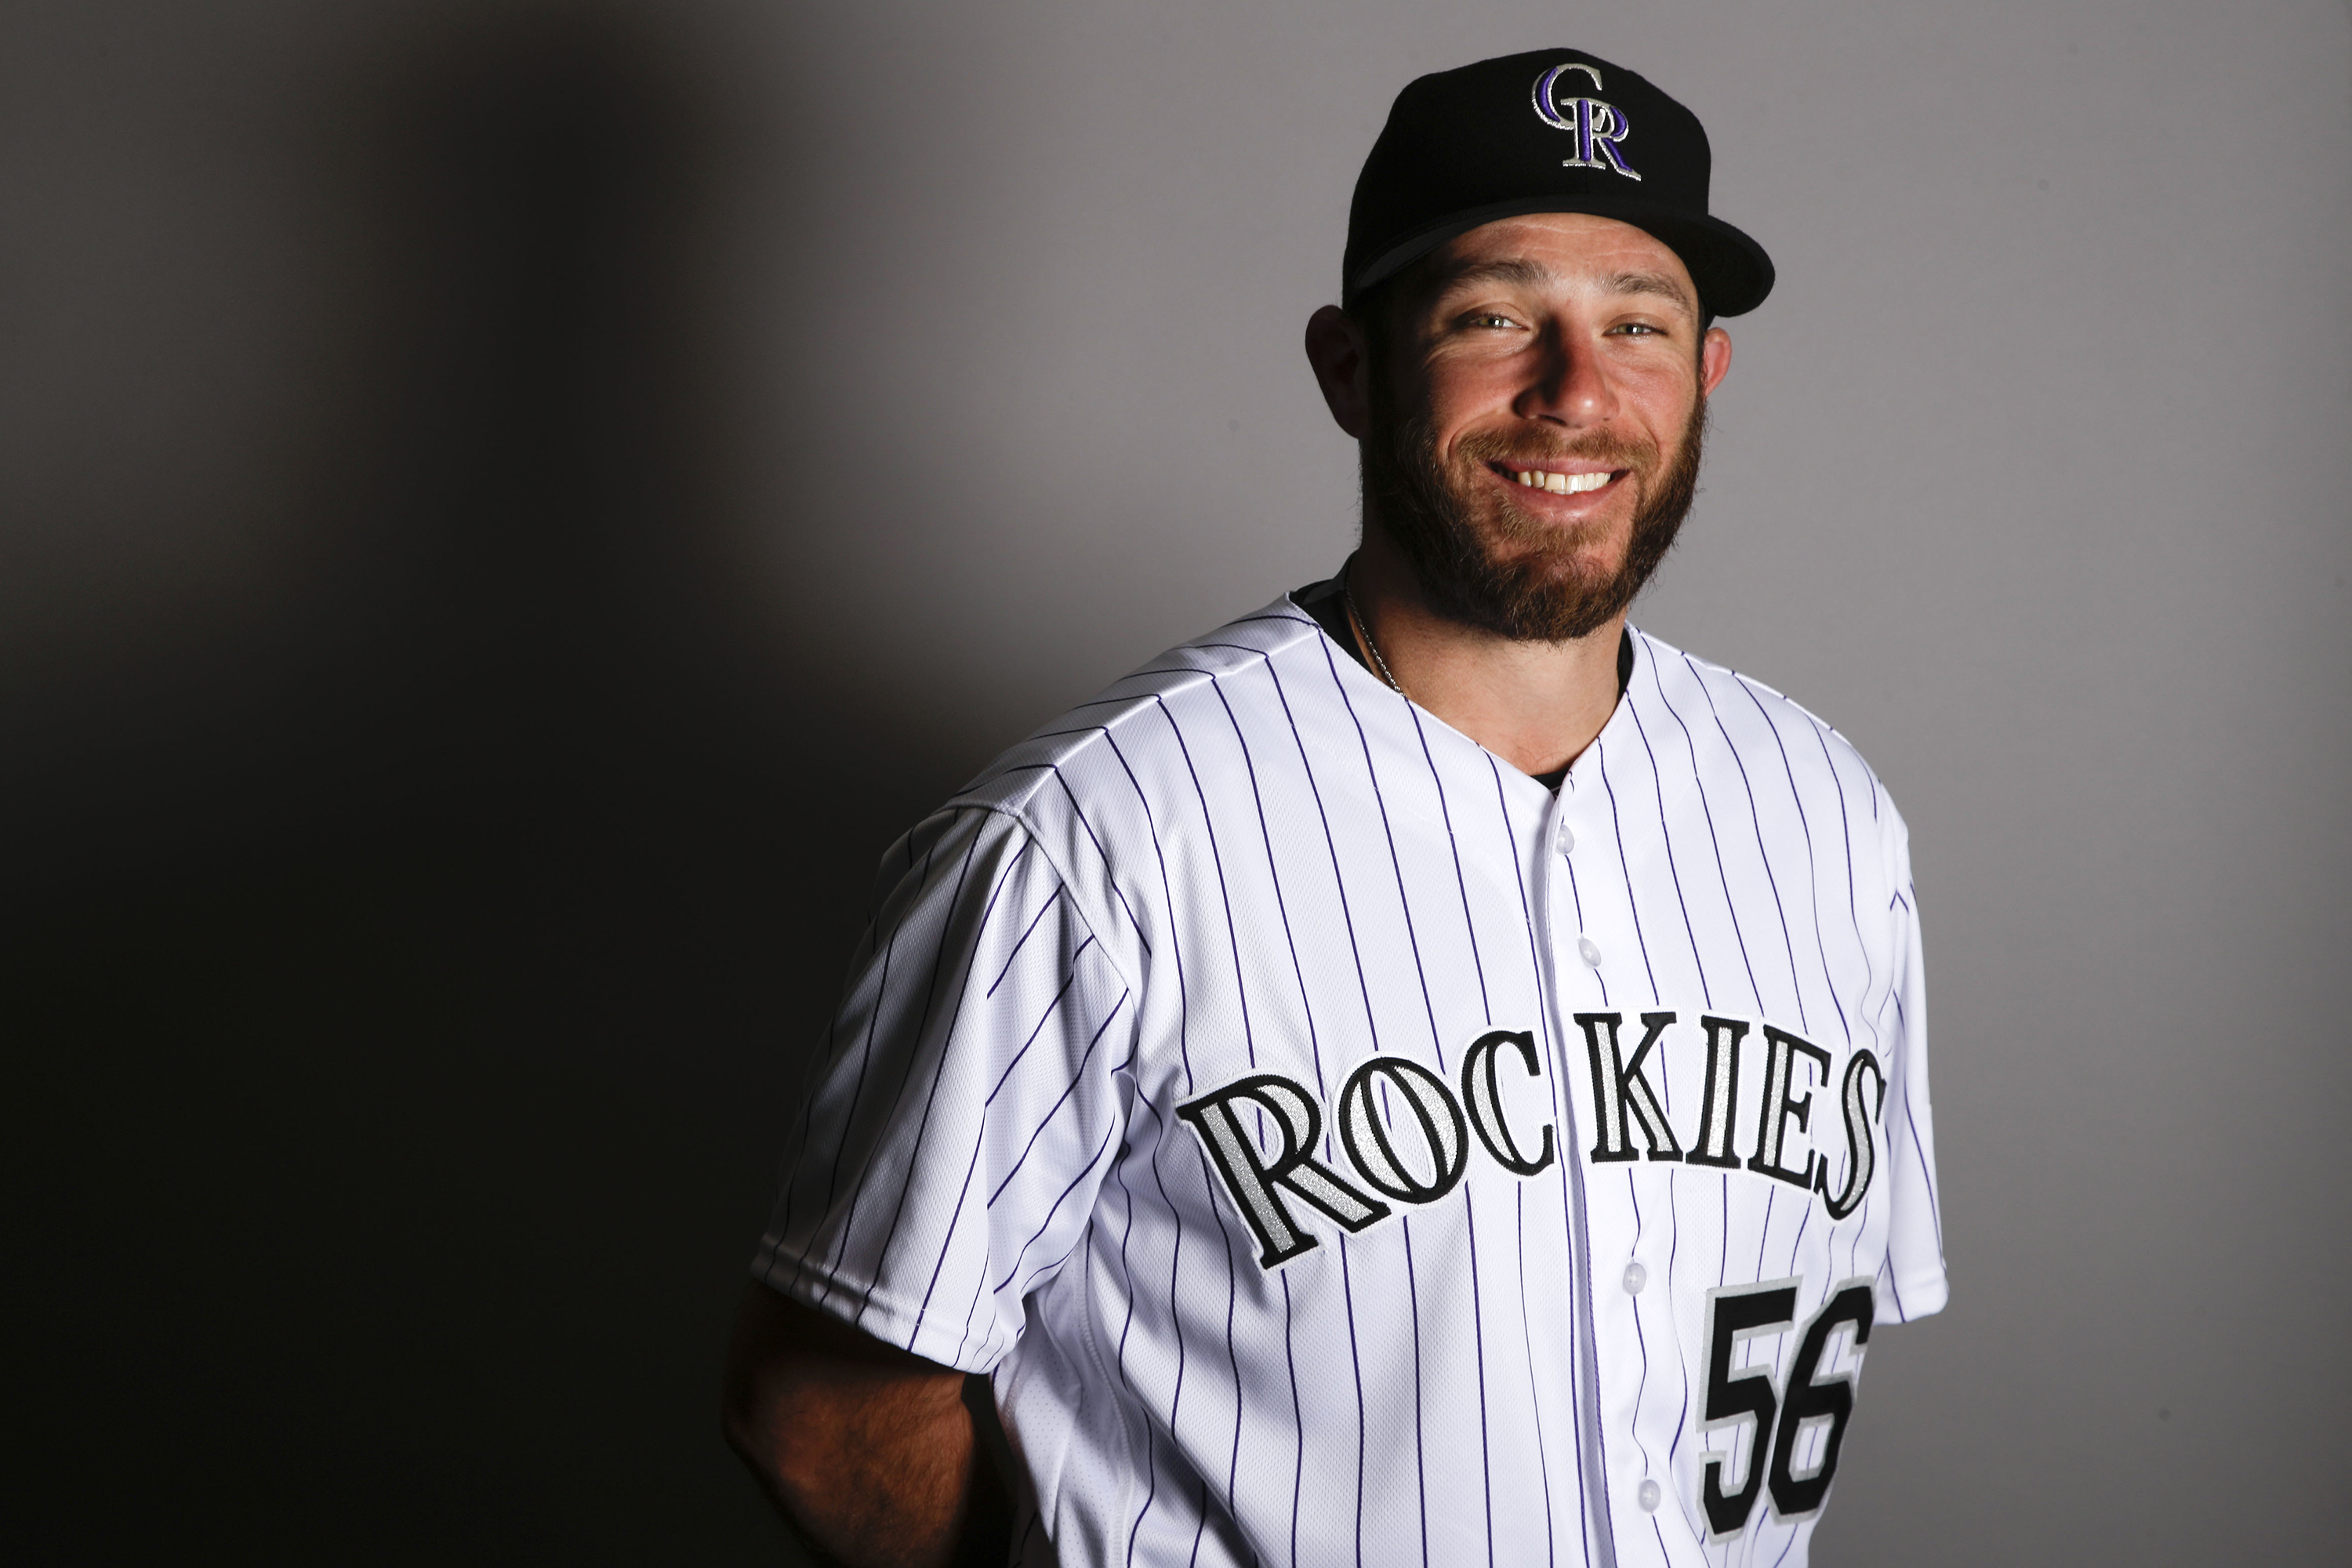 Photo: Rockies Pitcher Greg Holland